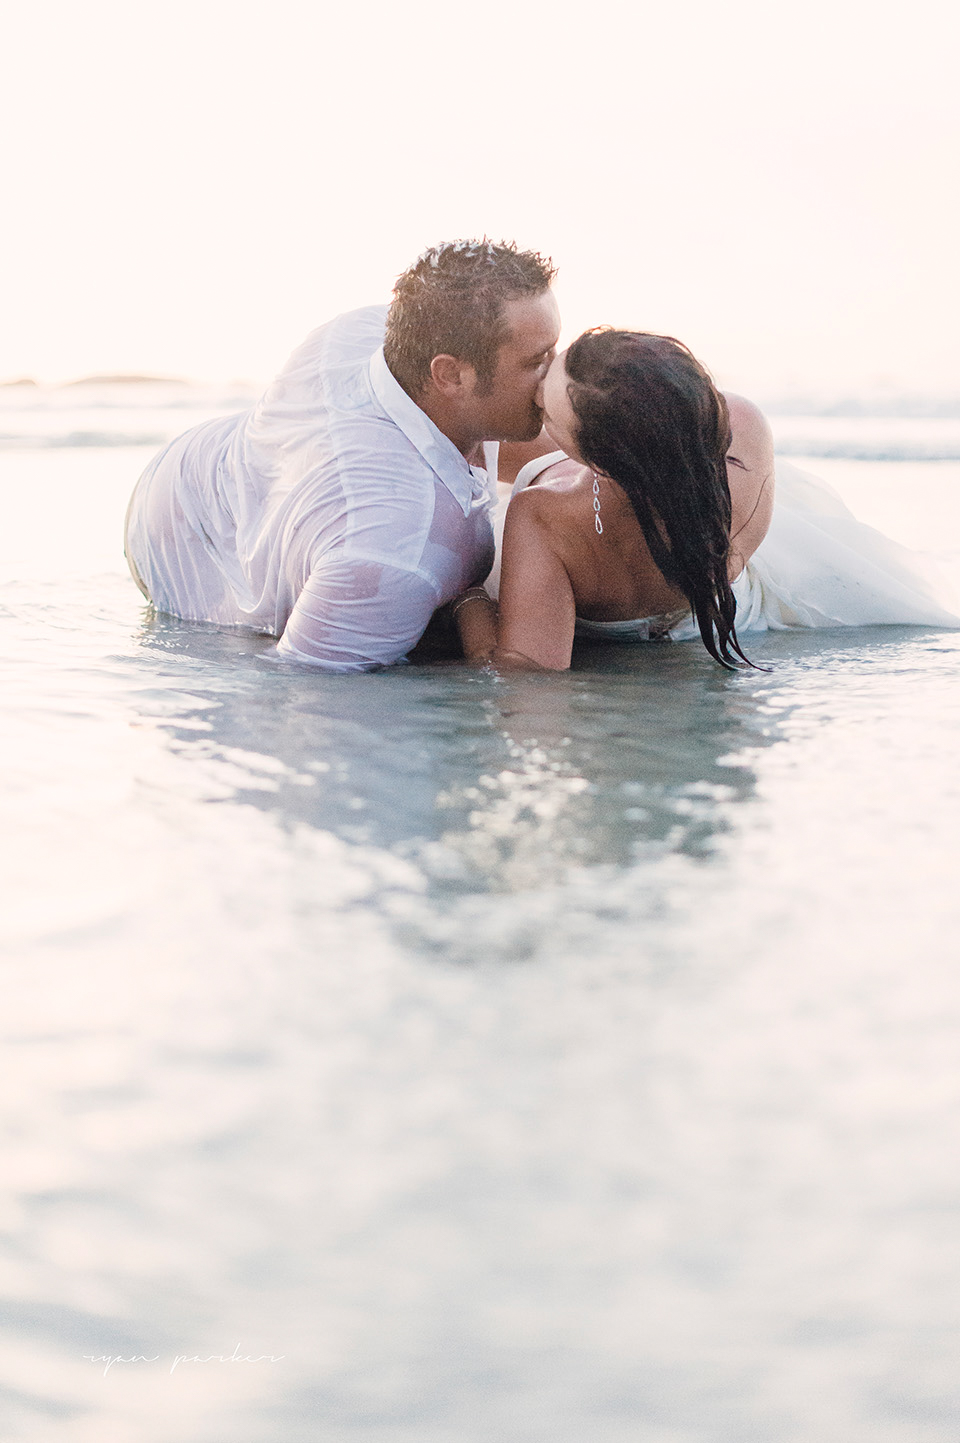 RYAN PARKER_WEDDING PHOTOGRAPHER_FINE ART_WESTERN_CAPE PATERNOSTER_M&F-2-10.jpg